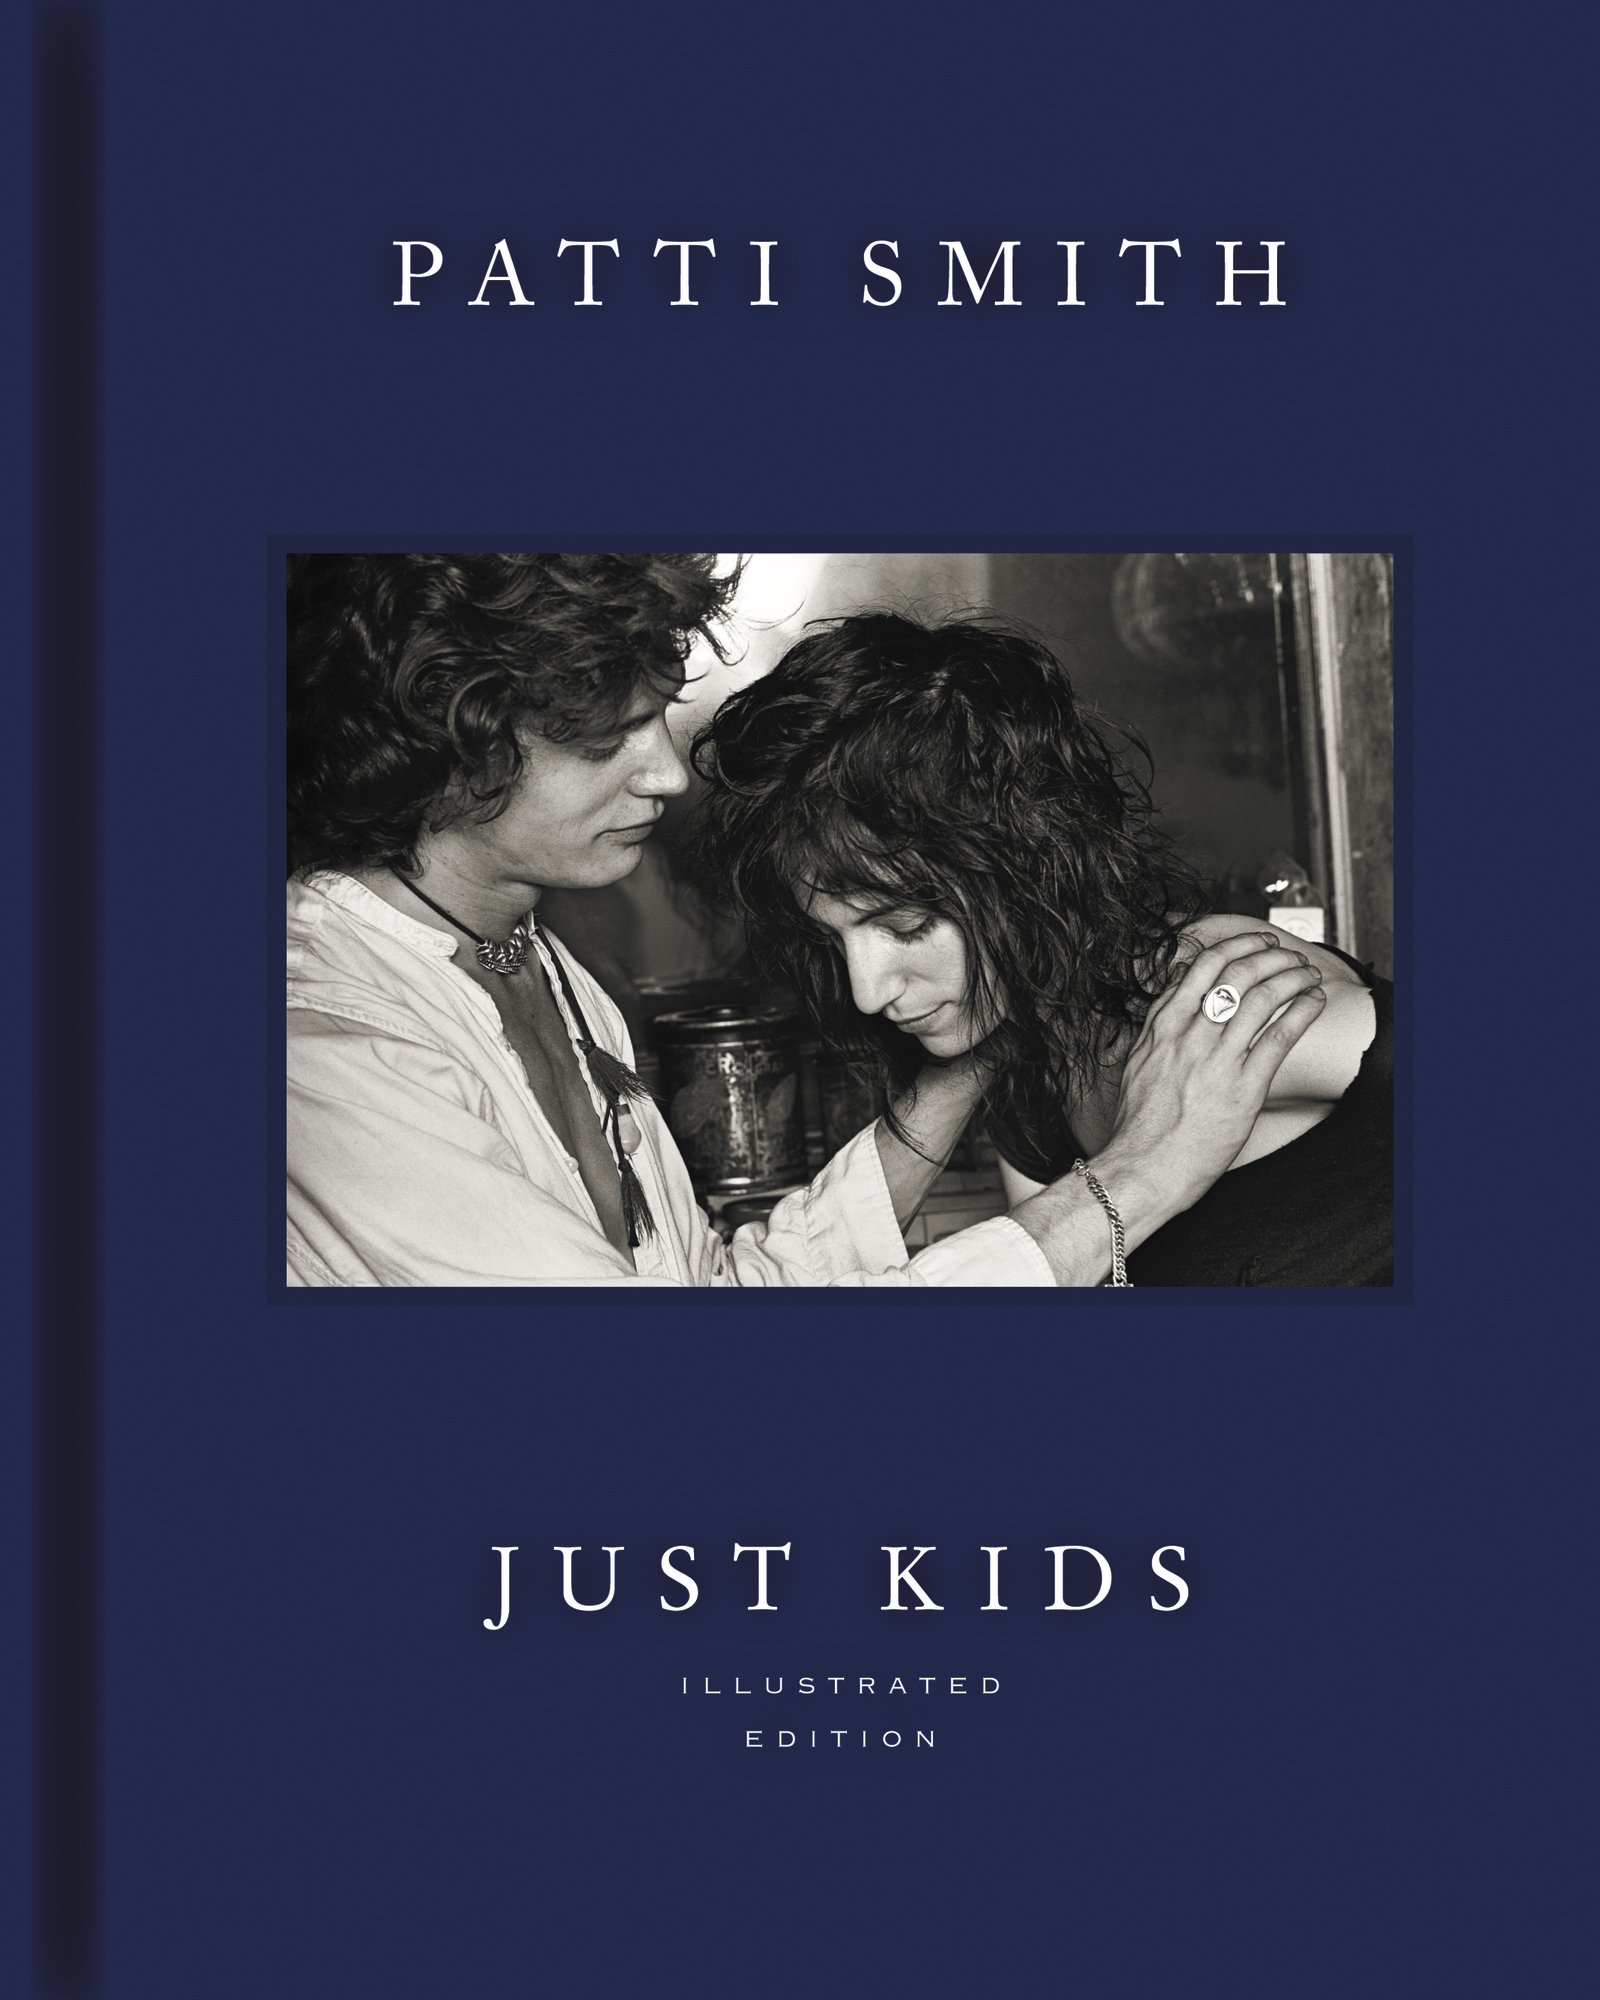 Patti smith m train goodreads giveaways